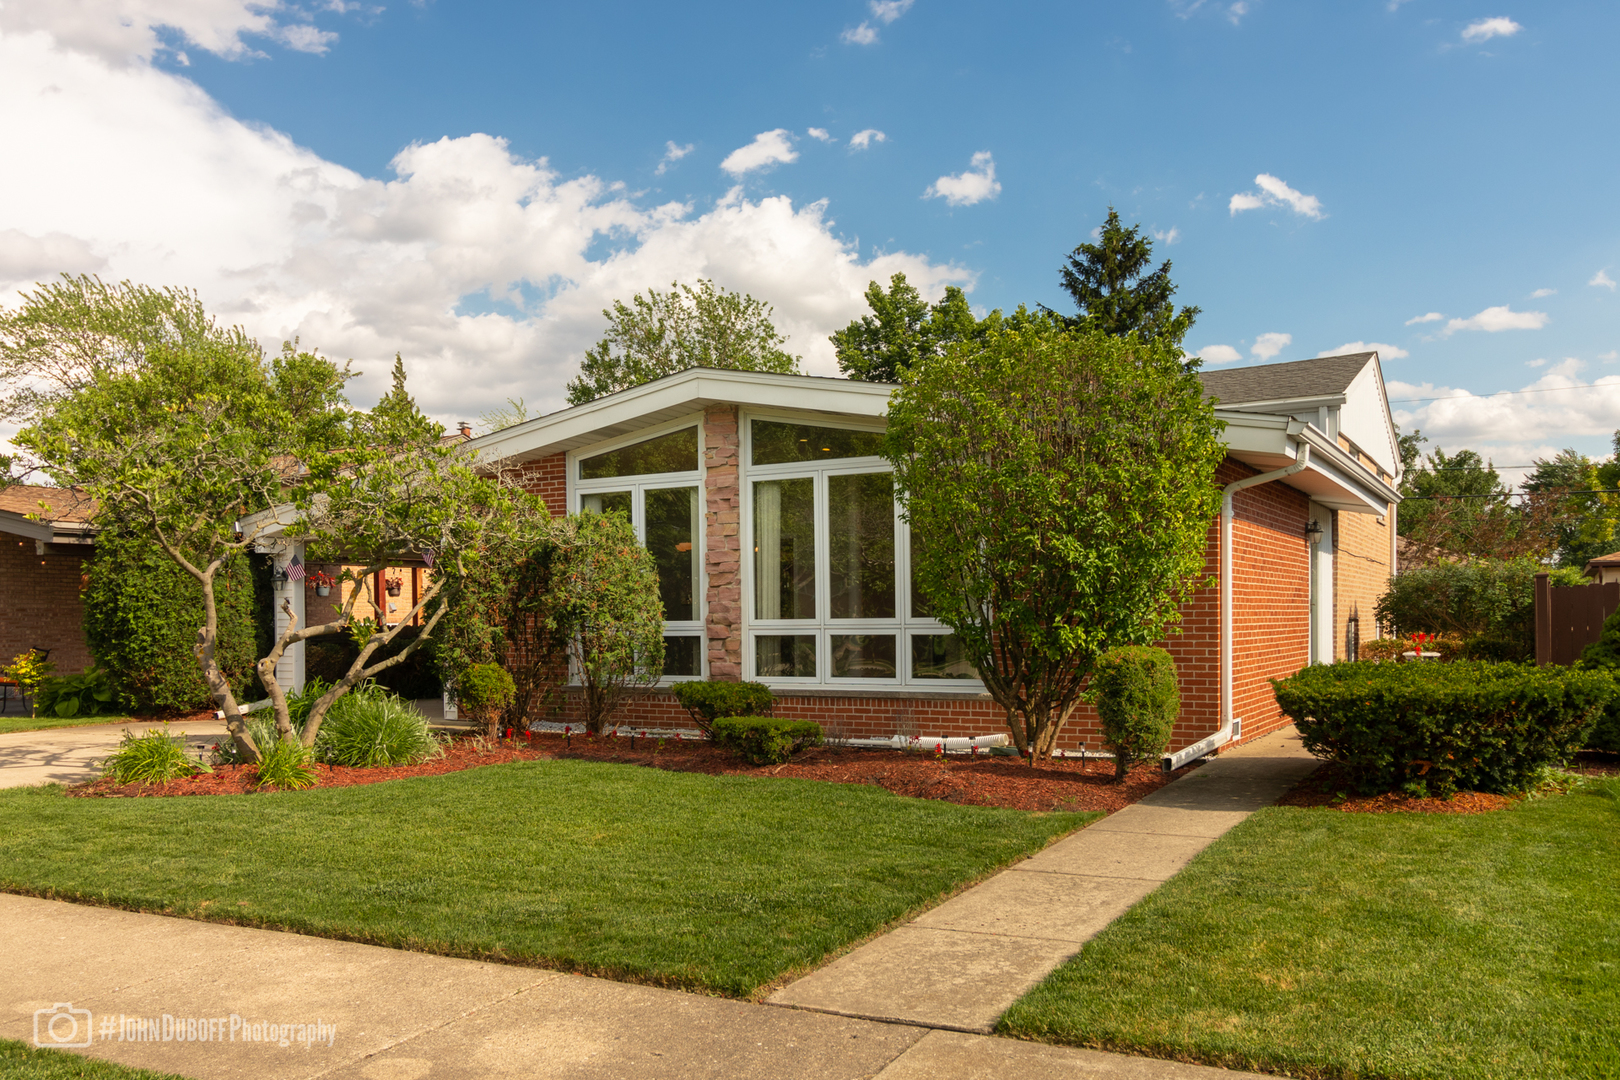 8545 West NORMAL Avenue, one of homes for sale in Niles